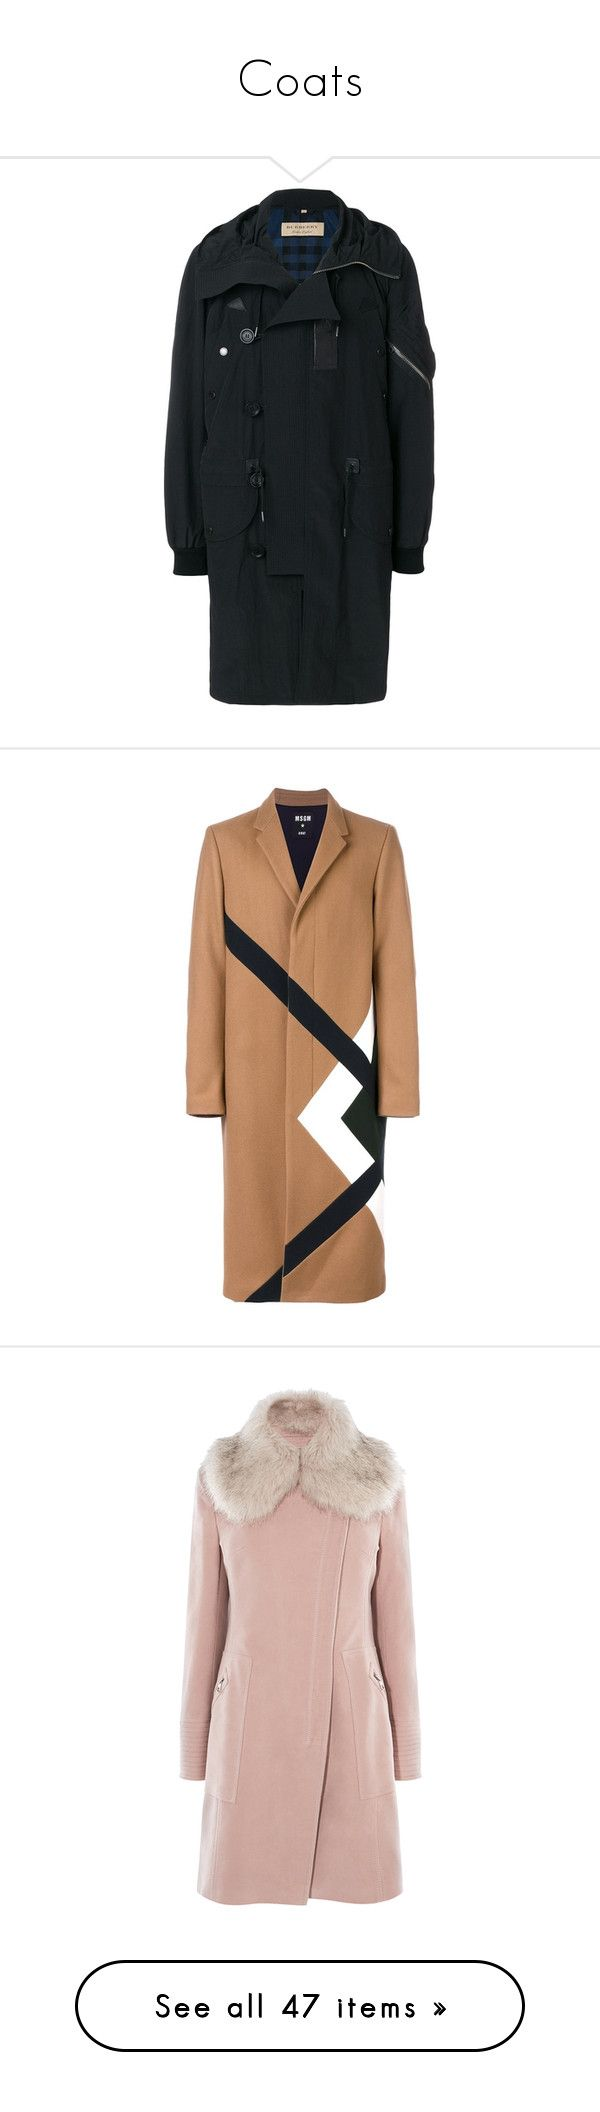 """""""Coats"""" by svmsrzybk ❤ liked on Polyvore featuring men's fashion, men's clothing, men's outerwear, men's coats, black, burberry mens coat, mens toggle coat, mens hooded coat, mens parka coats and mens hooded toggle coat"""